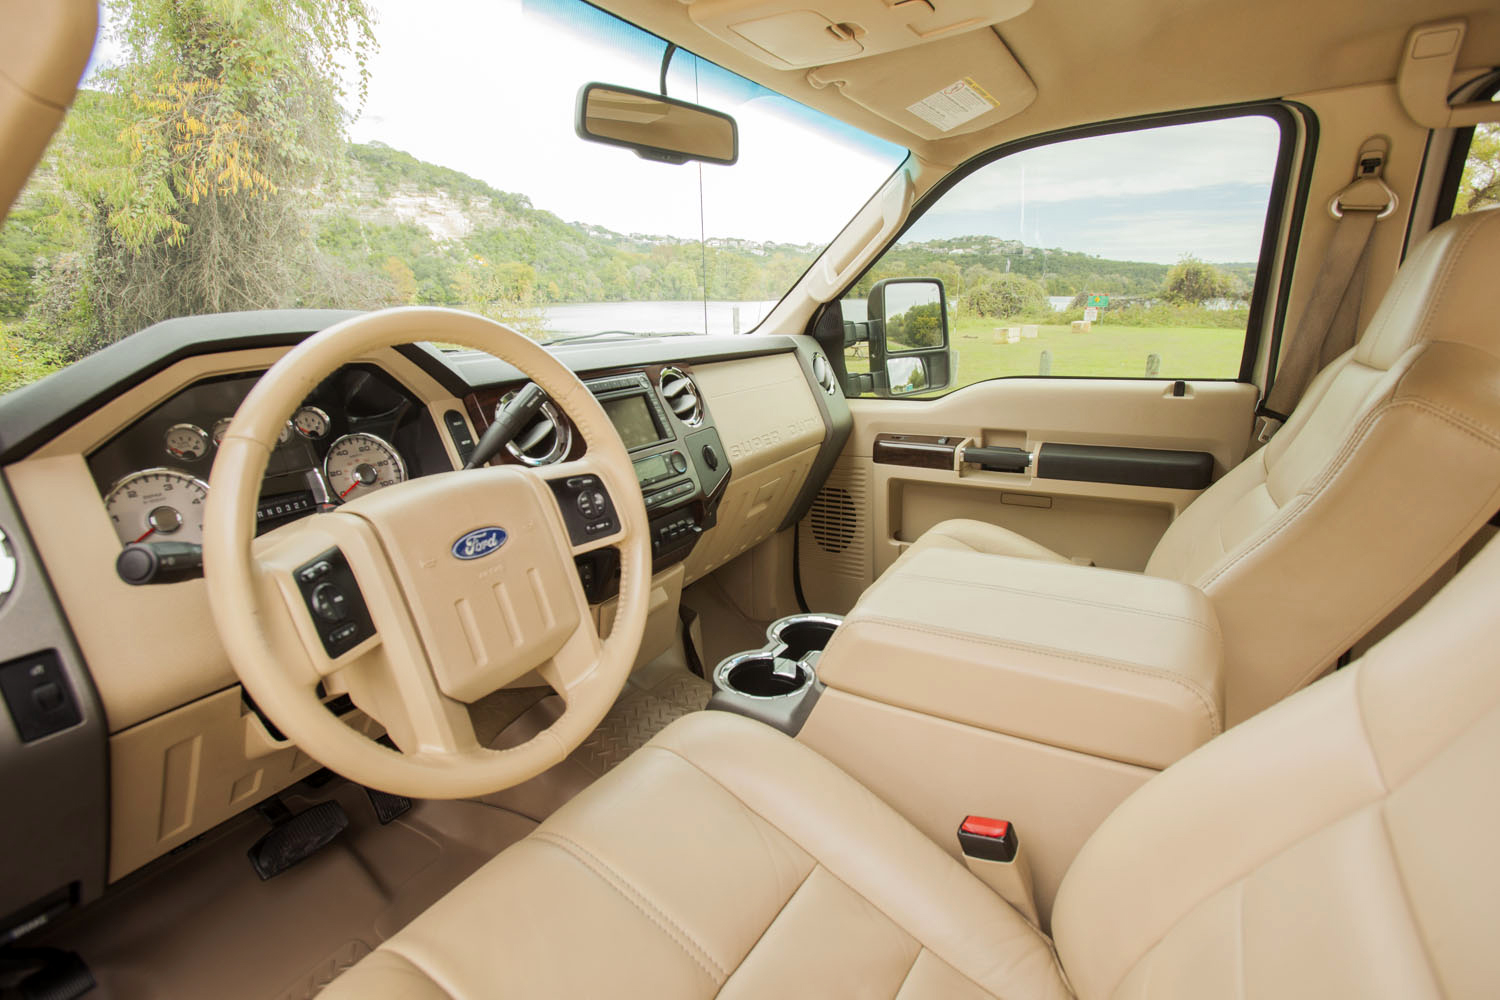 2001 Ford F150 Lariat >> 2008 Ford F-250 Super Duty - Pictures - CarGurus